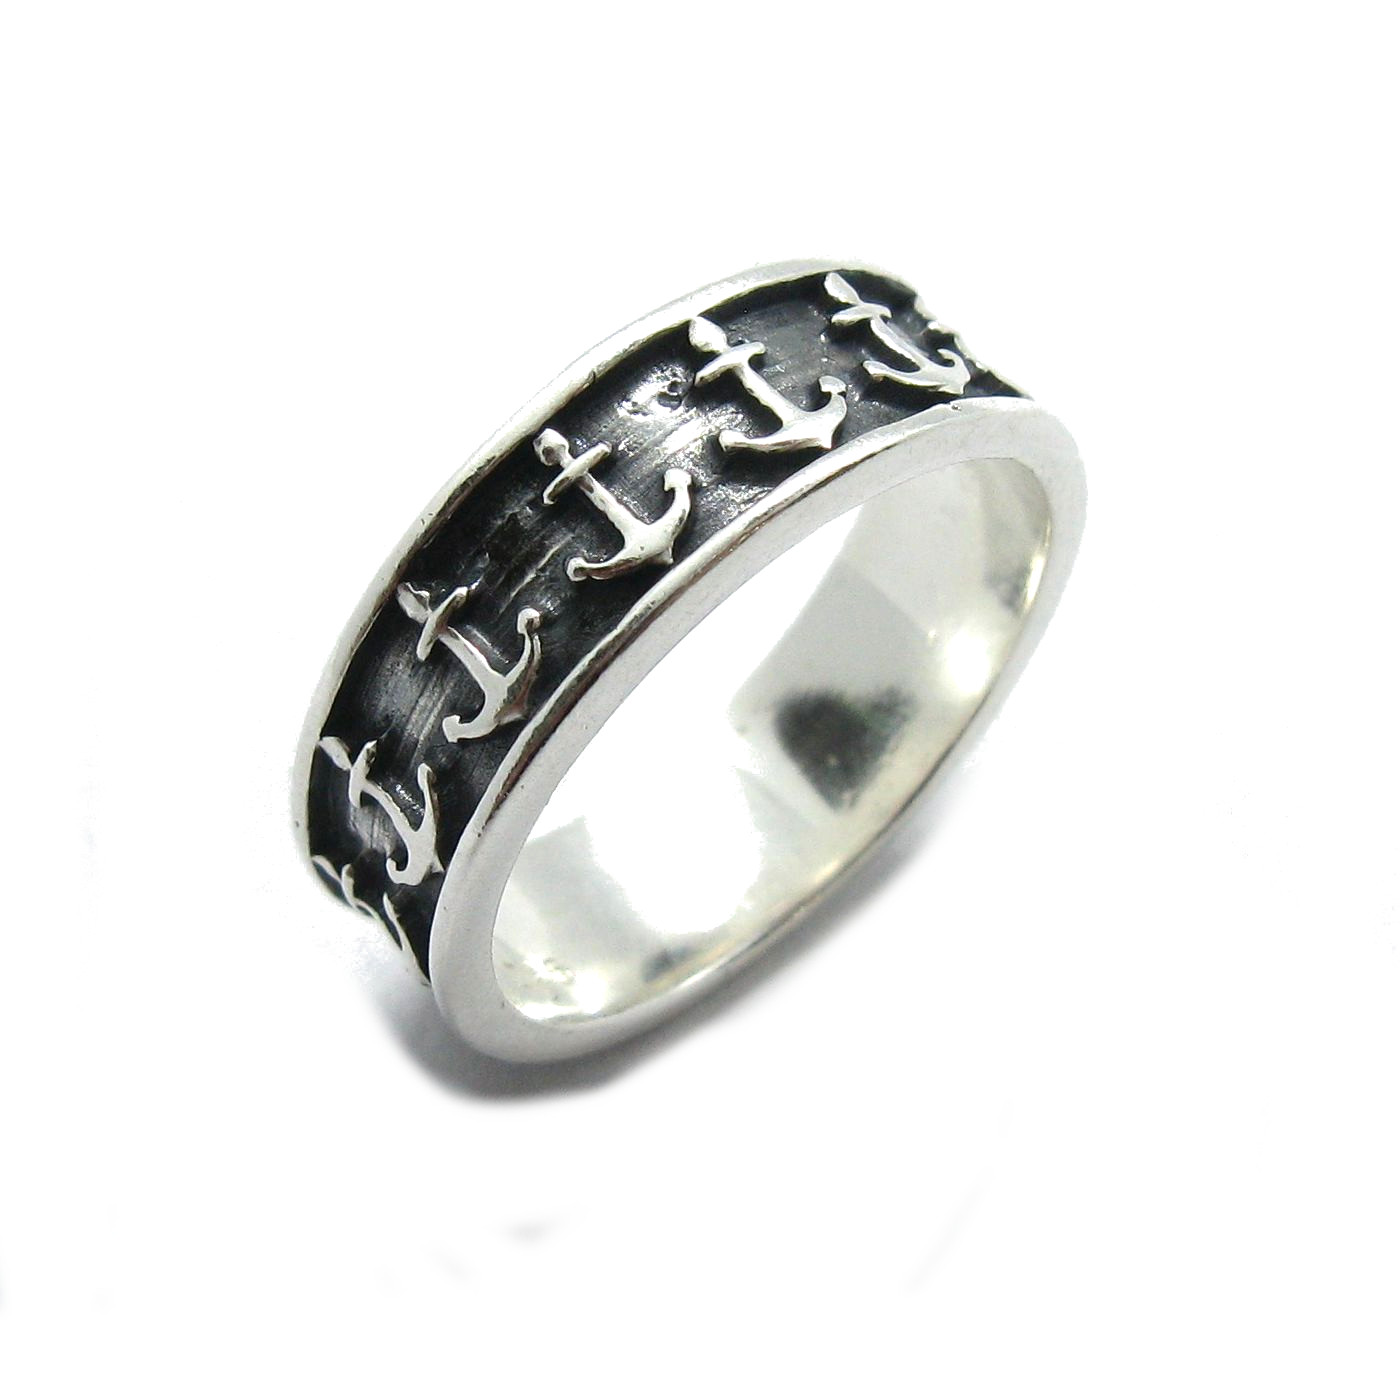 Silver ring - R001794